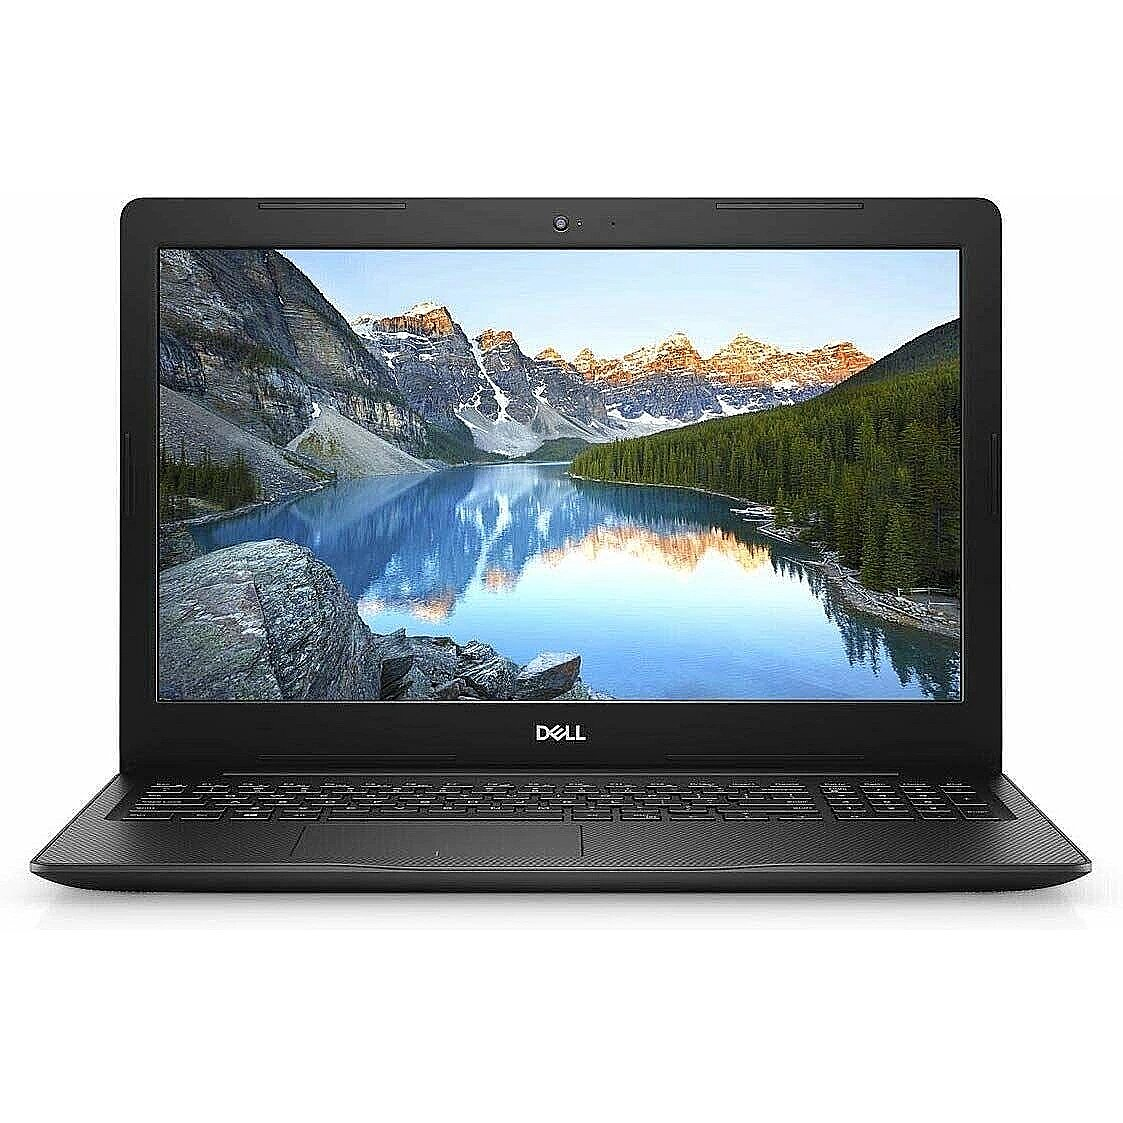 Dell Inspiron 15 (3593) Black, 15.6